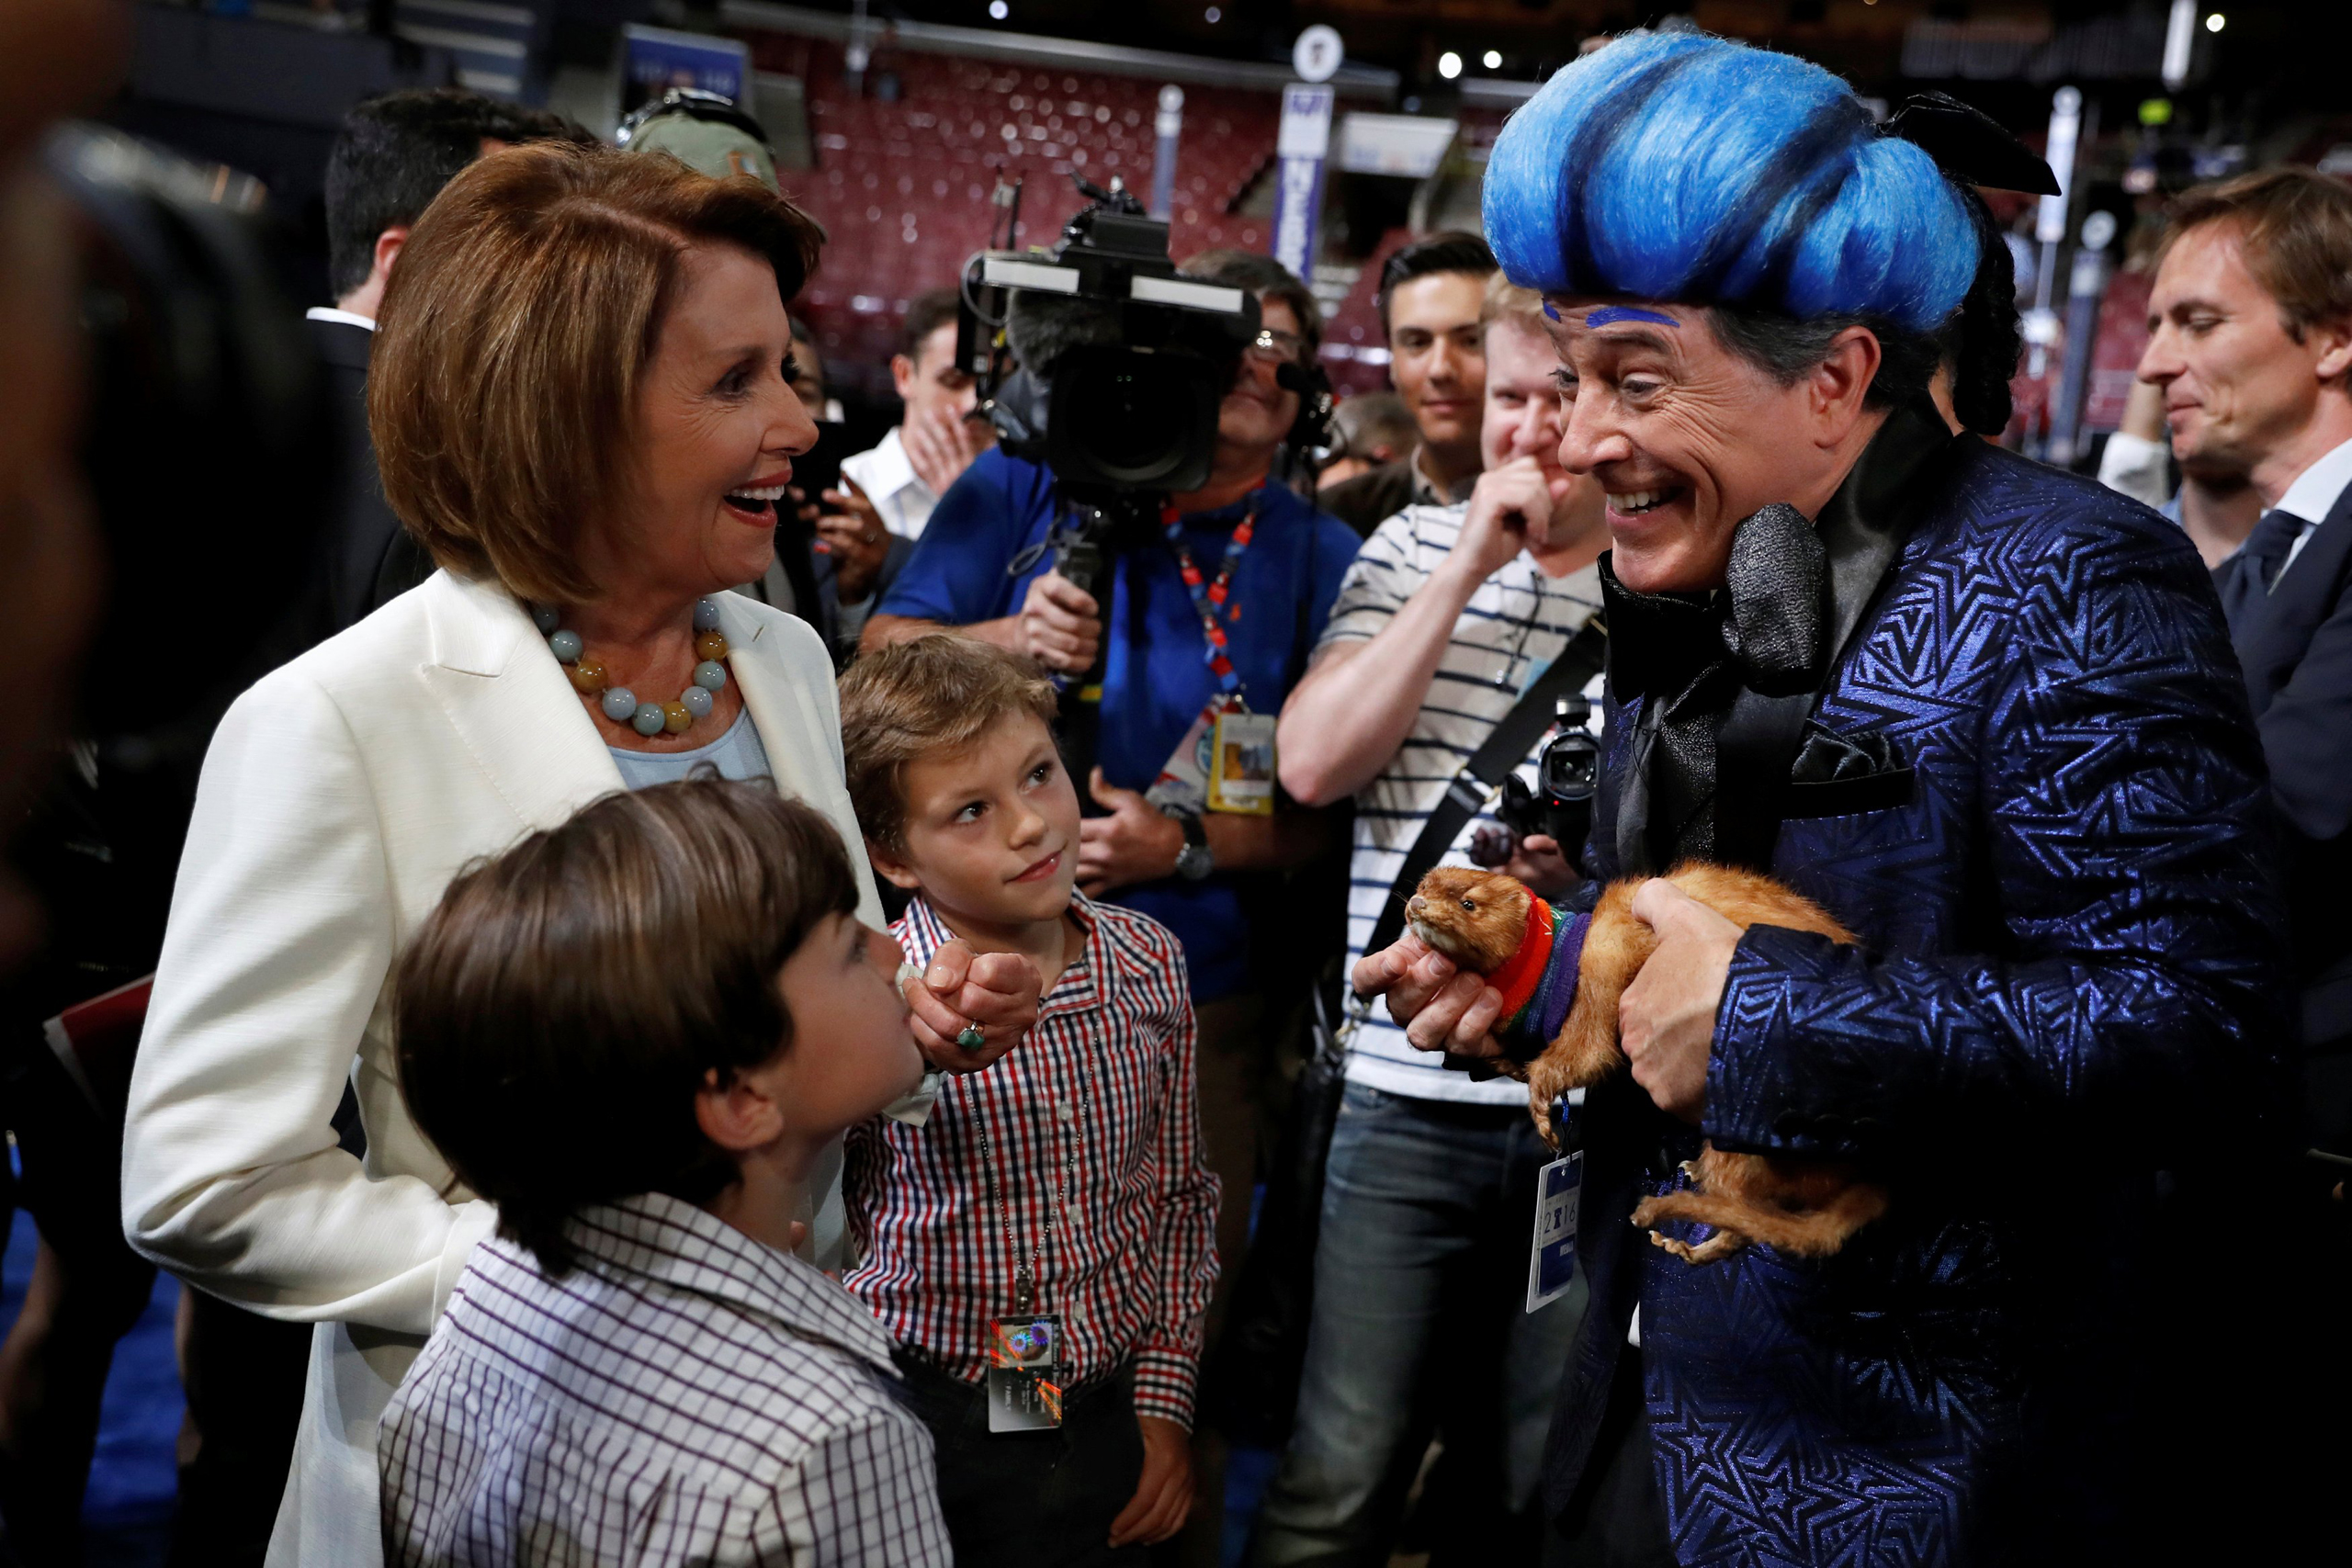 U.S. House Minority Leader Nancy Pelosi (D-CA) and two of her grandsons greet comedian Stephen Colbert (R) on the floor ahead of the 2016 Democratic National Convention in Philadelphia on July 24, 2016.